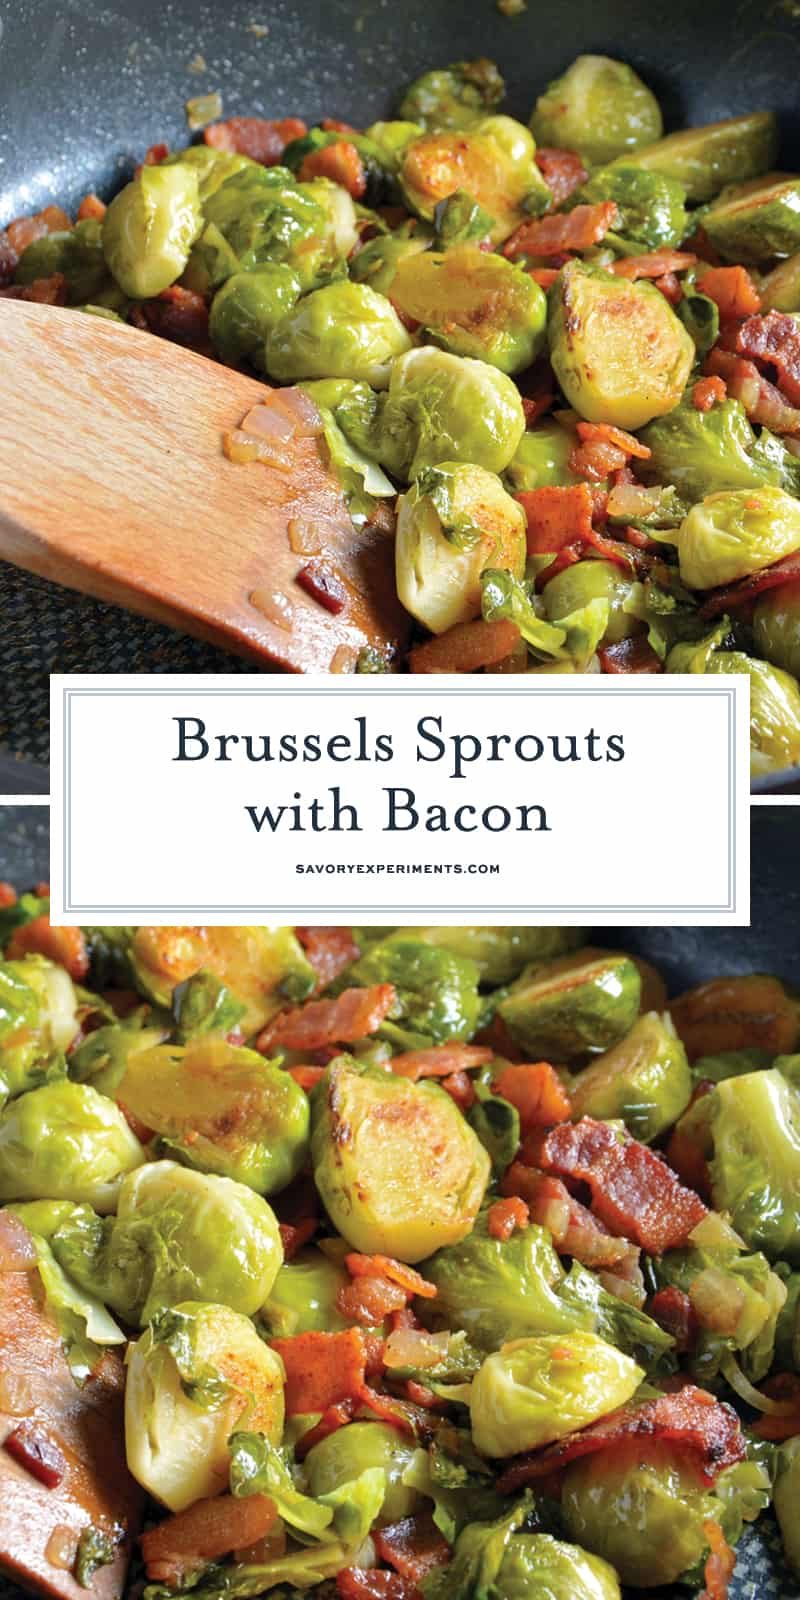 These Brussel Sprouts with Bacon are an easy side dish recipe that can be served with practically any meal! #brusselsproutswithbacon #brusselsproutsrecipes #easysidedishrecipes www.savoryexperiments.com